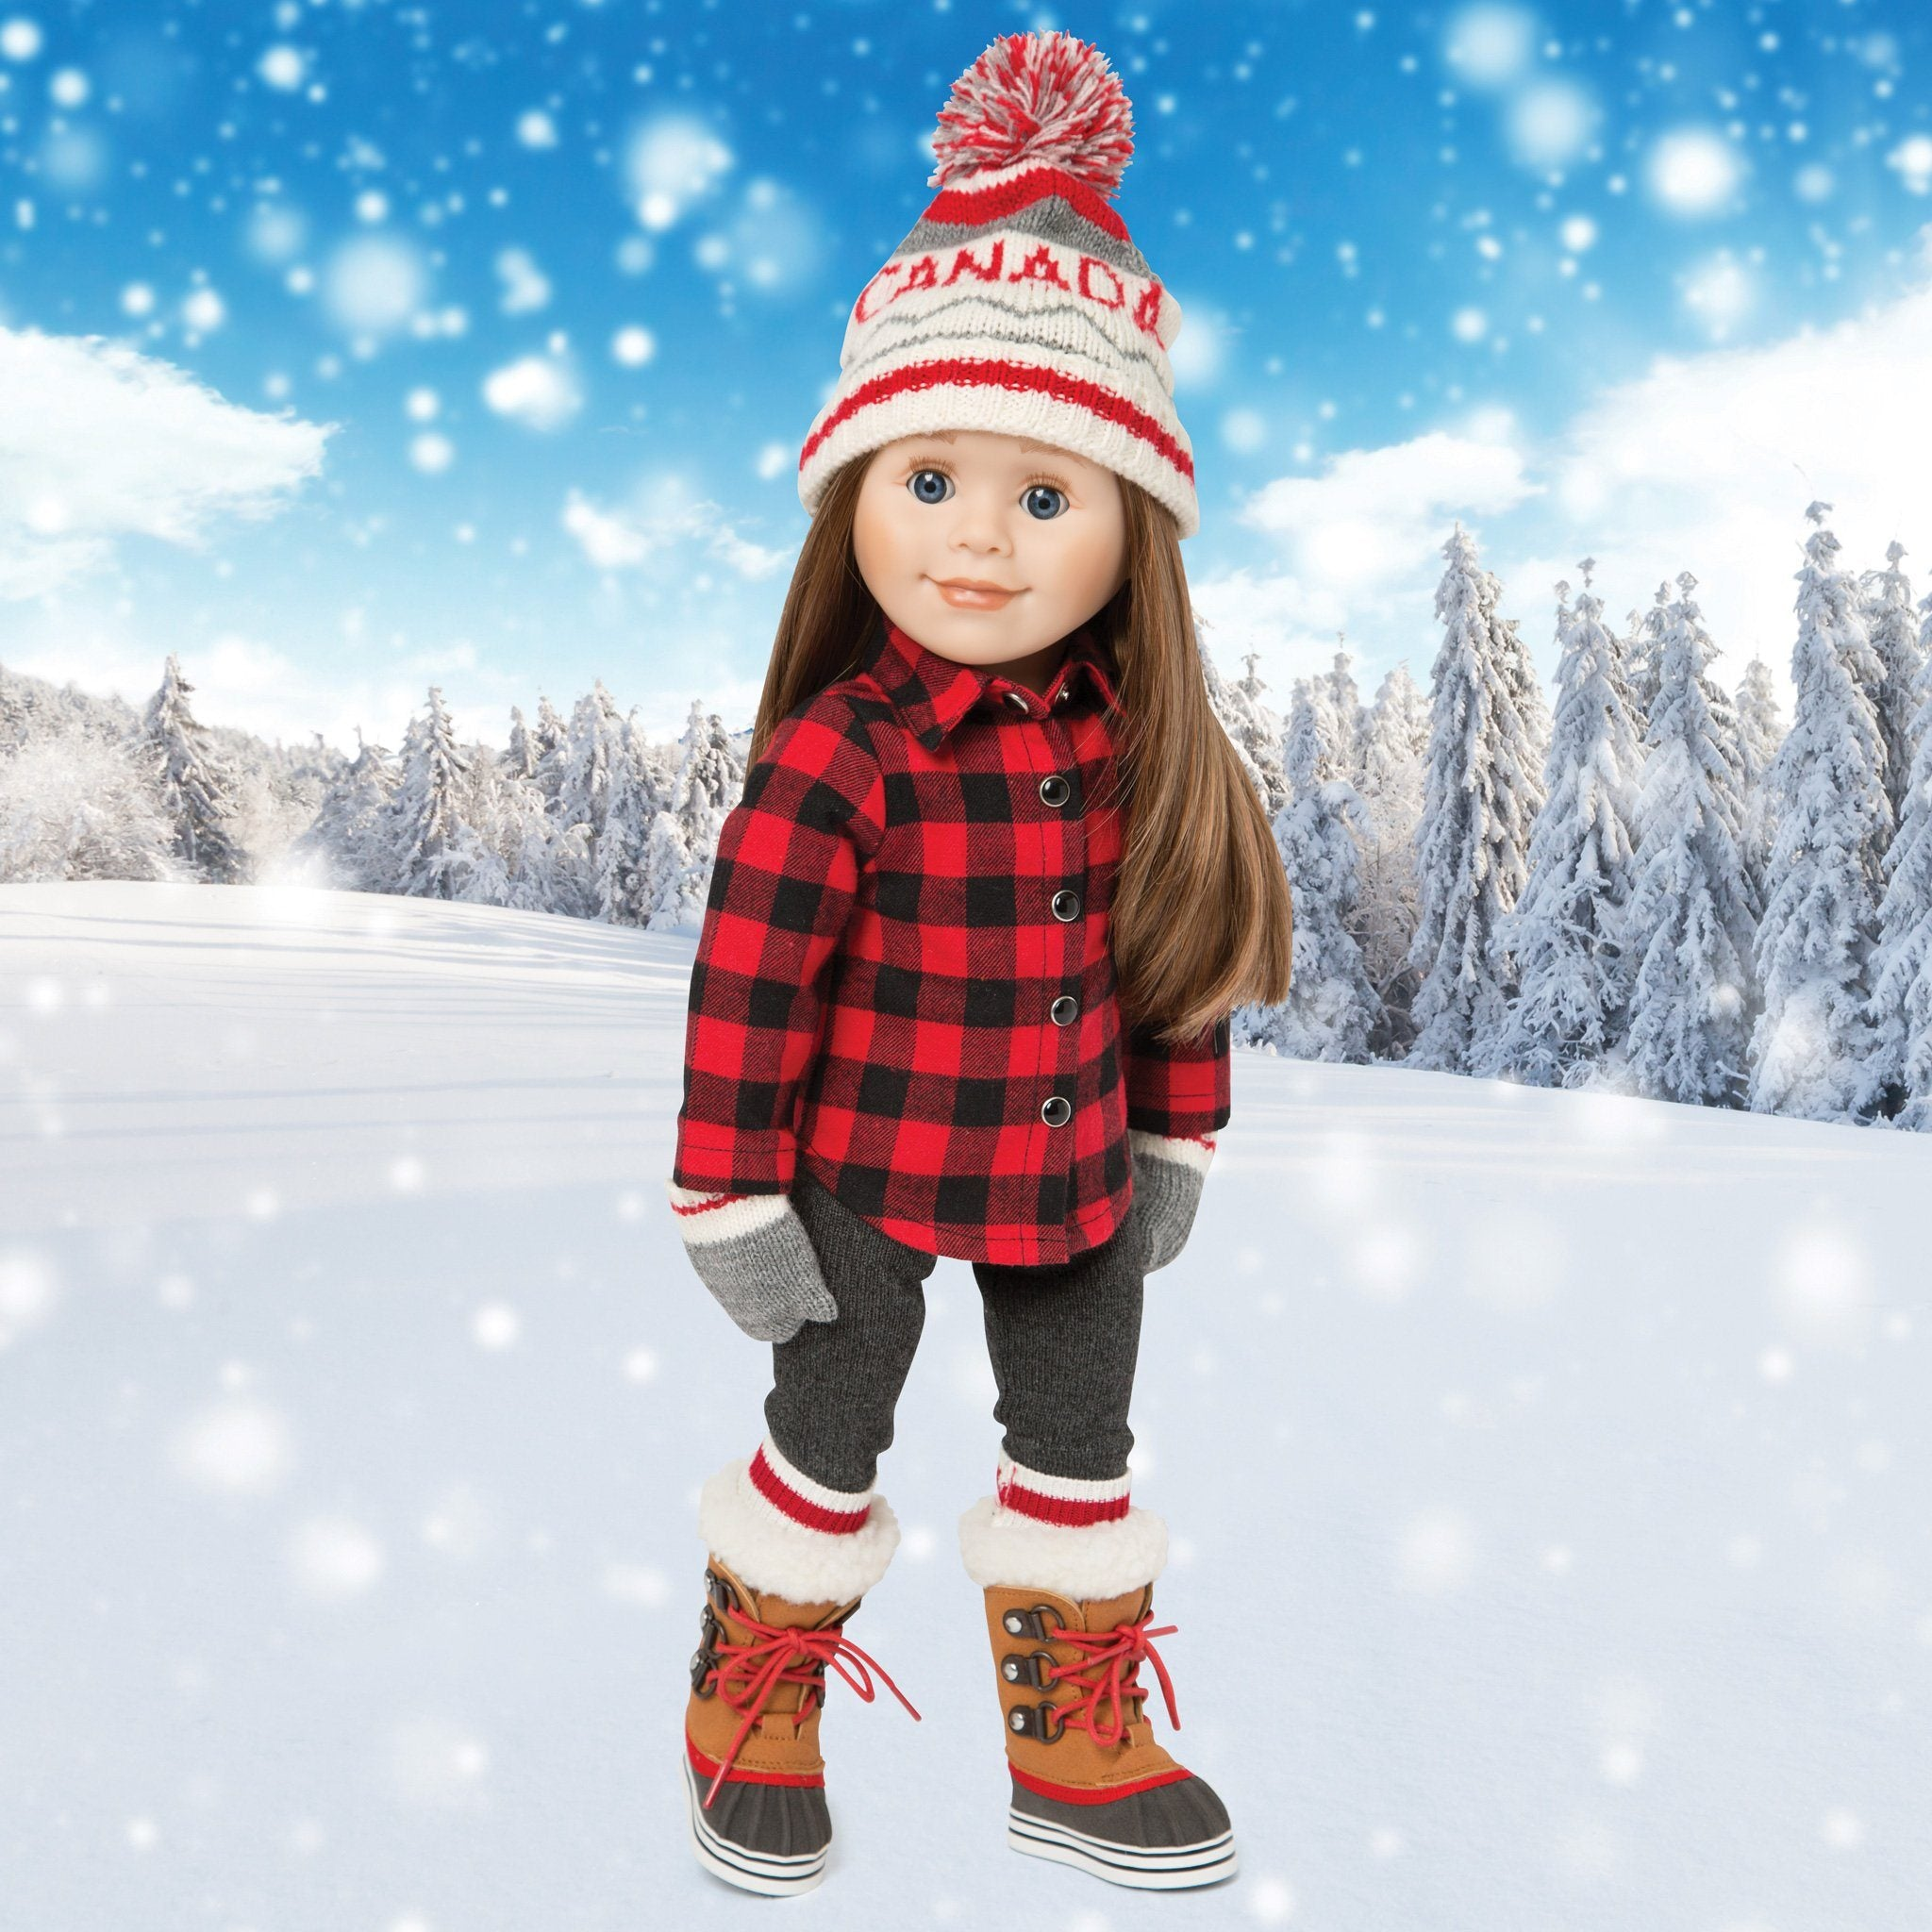 Storm Stompers rugged winter boots with fuzzy lining and red laces. Fits all 18 inch dolls.